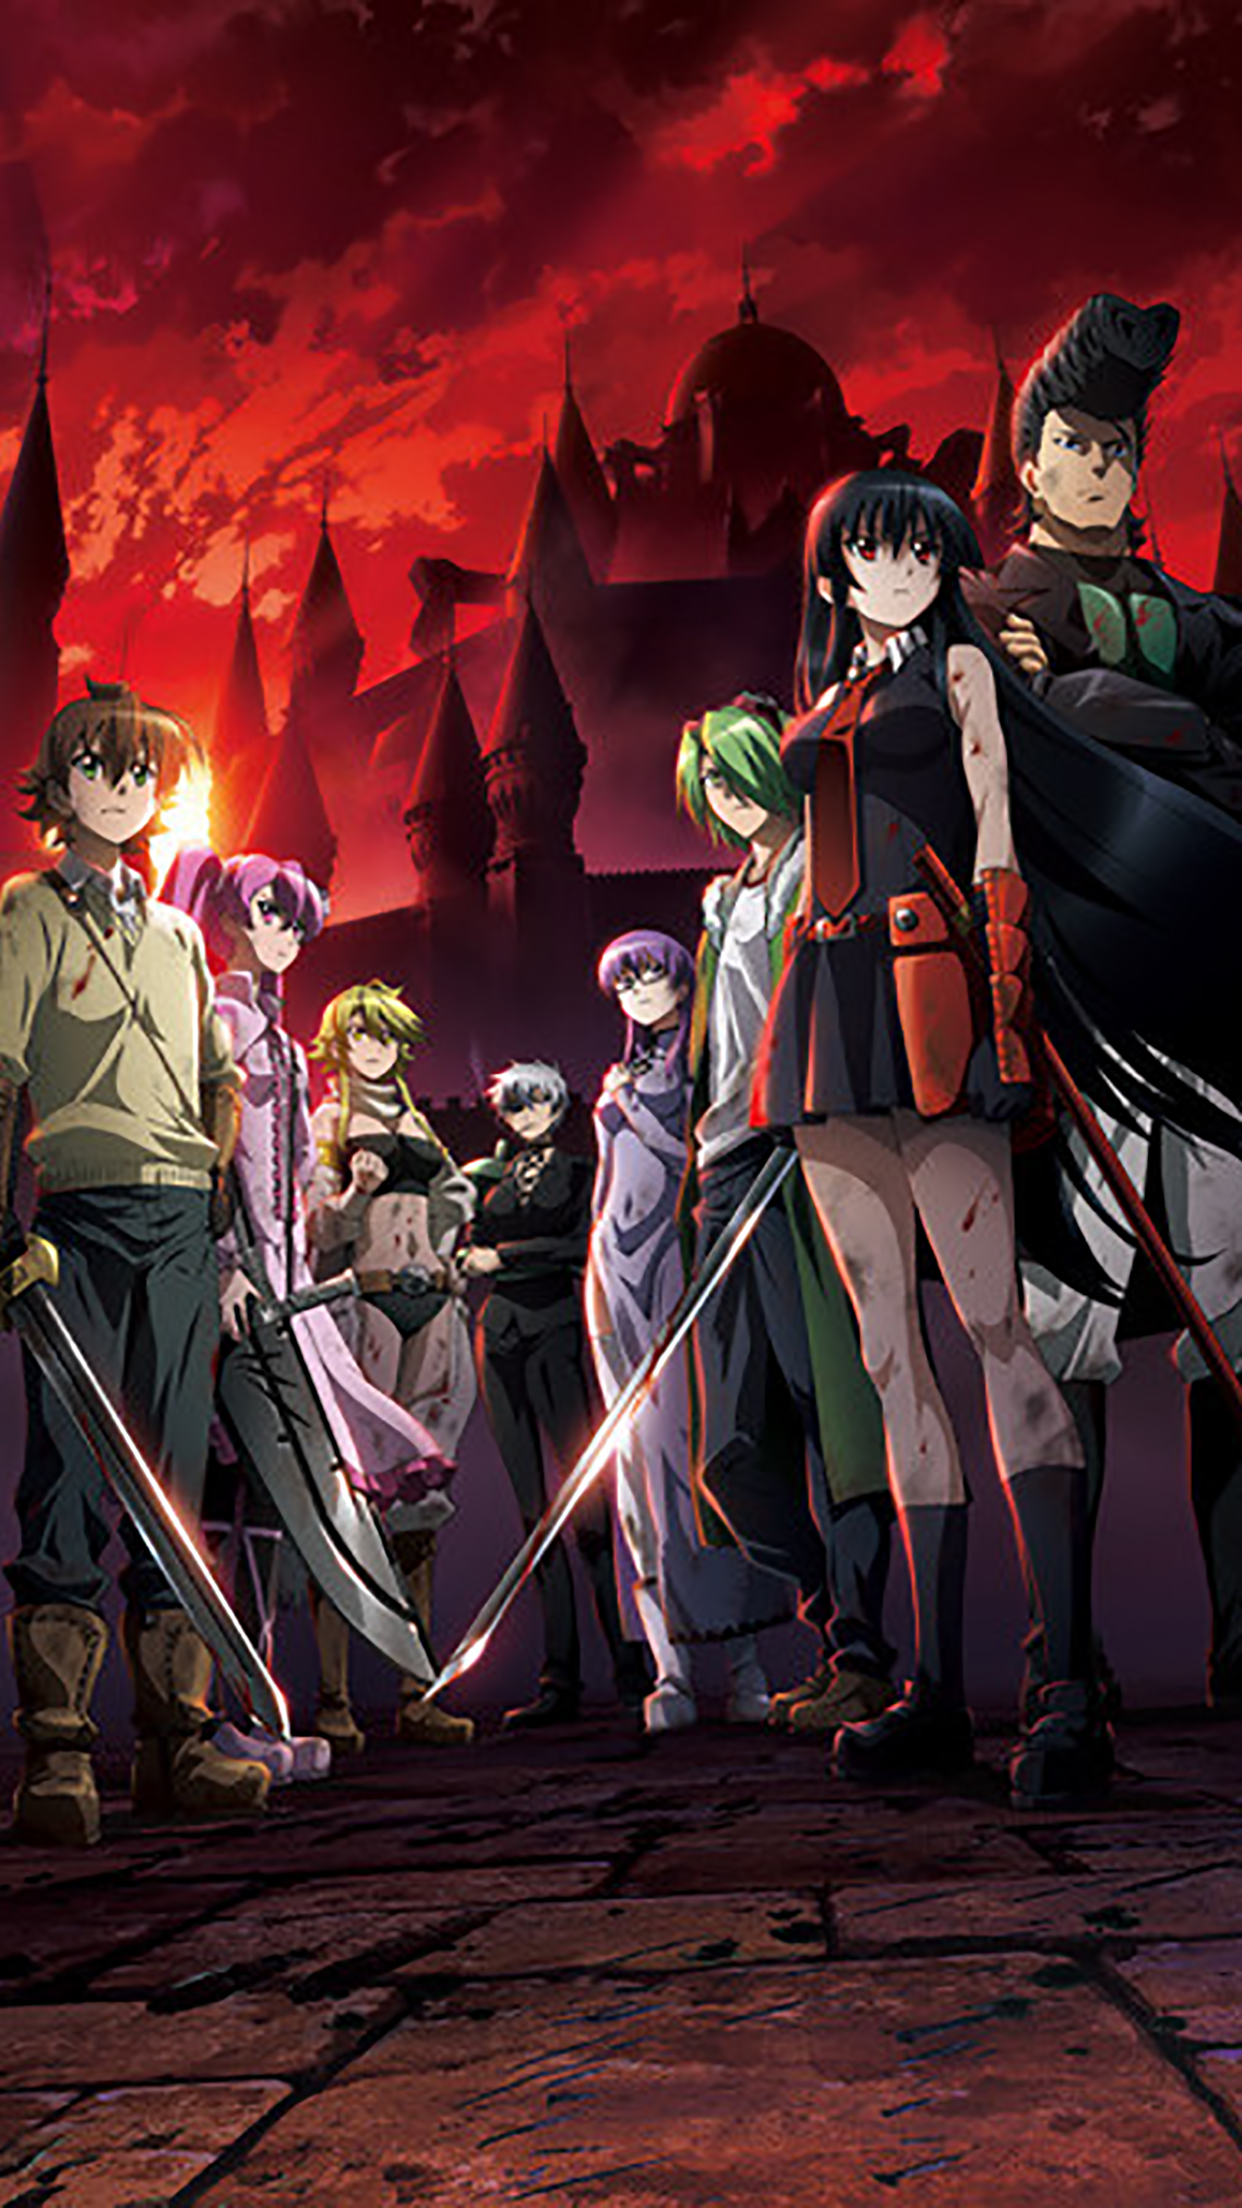 Akame Ga Kill Team Wallpaper For Iphone 11 Pro Max X 8 7 6